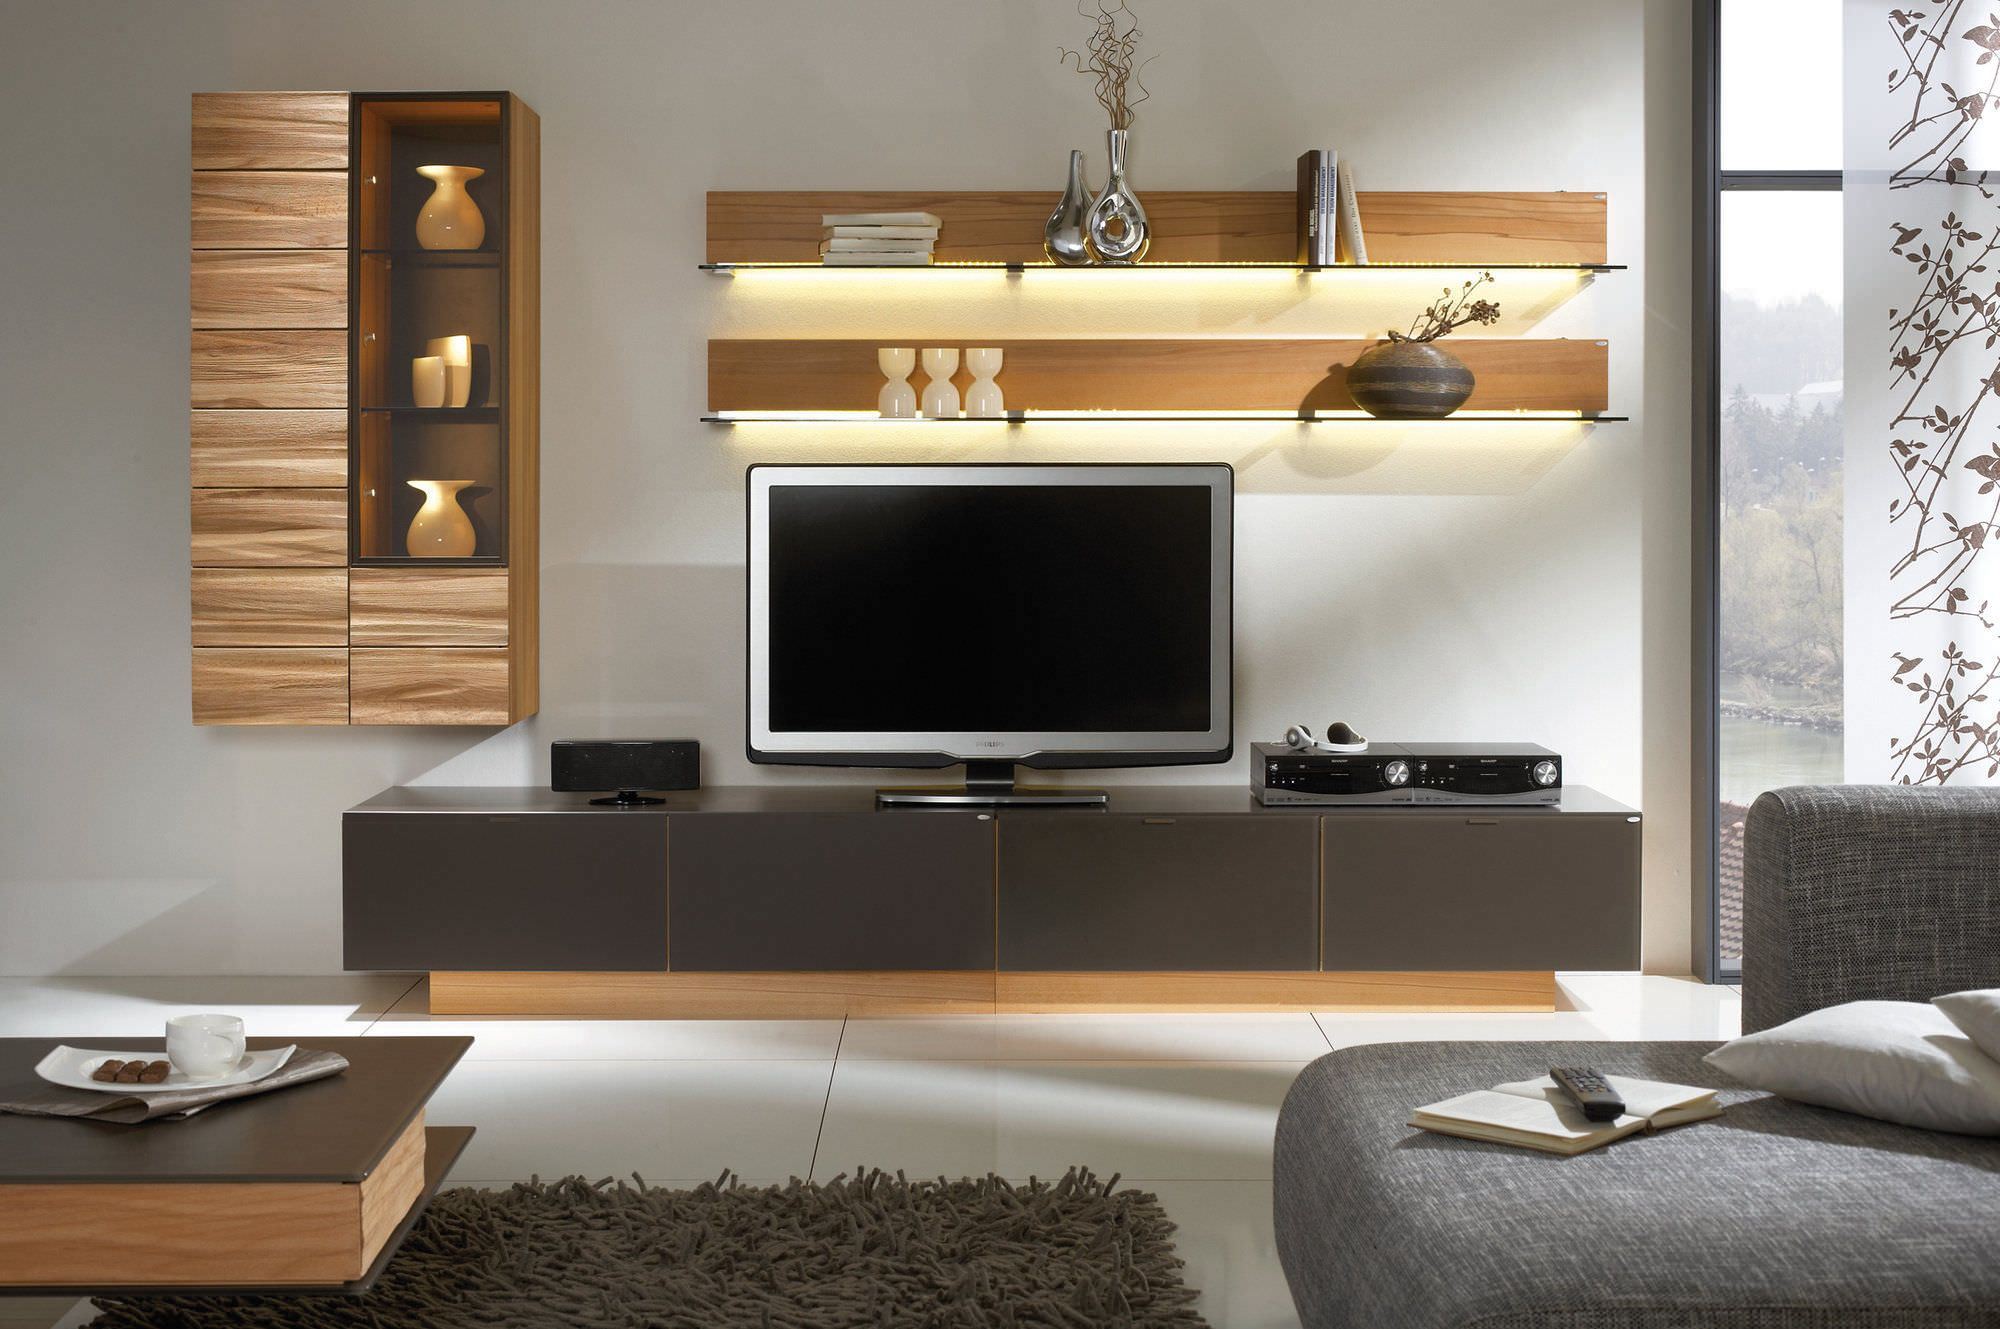 Awesome white brown wood glass cool design contemporary tv for Contemporary living room furniture ideas